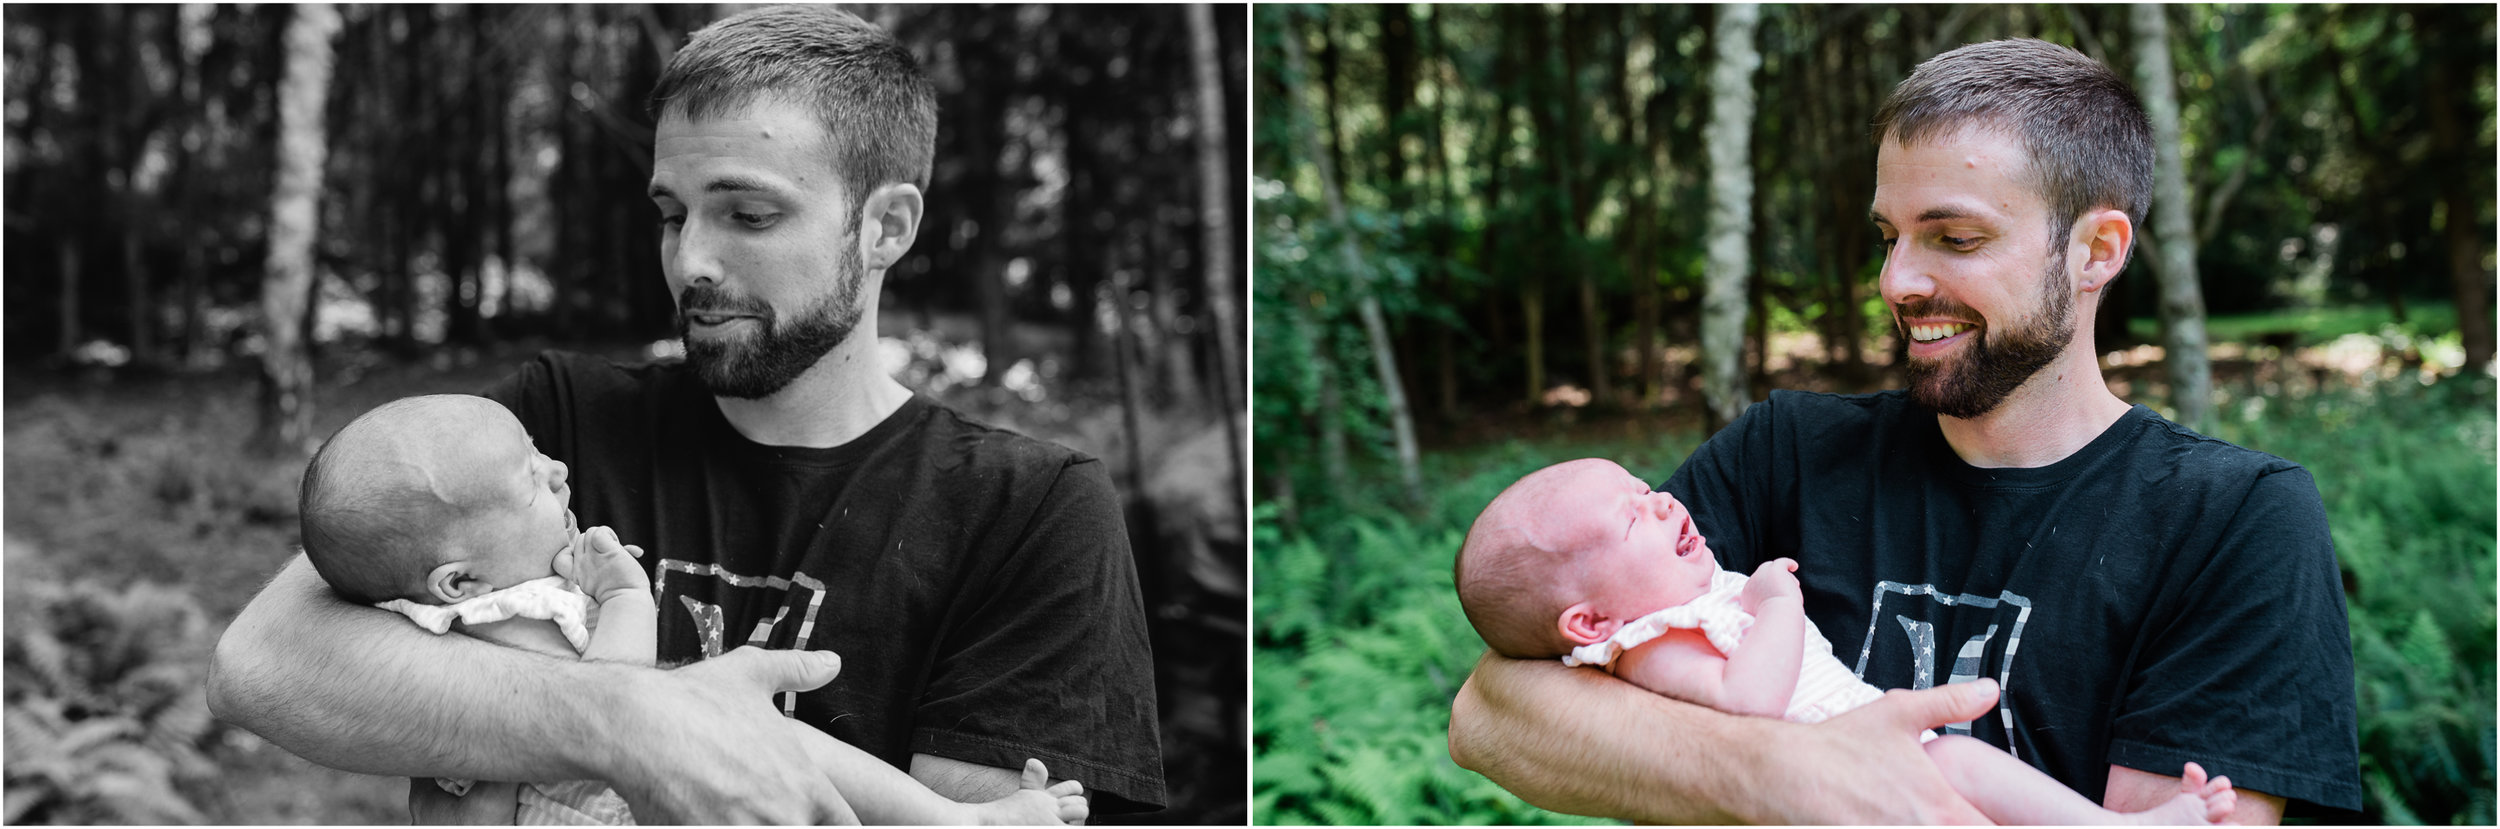 father and newborn daughter, ligonier pa photographer.jpg